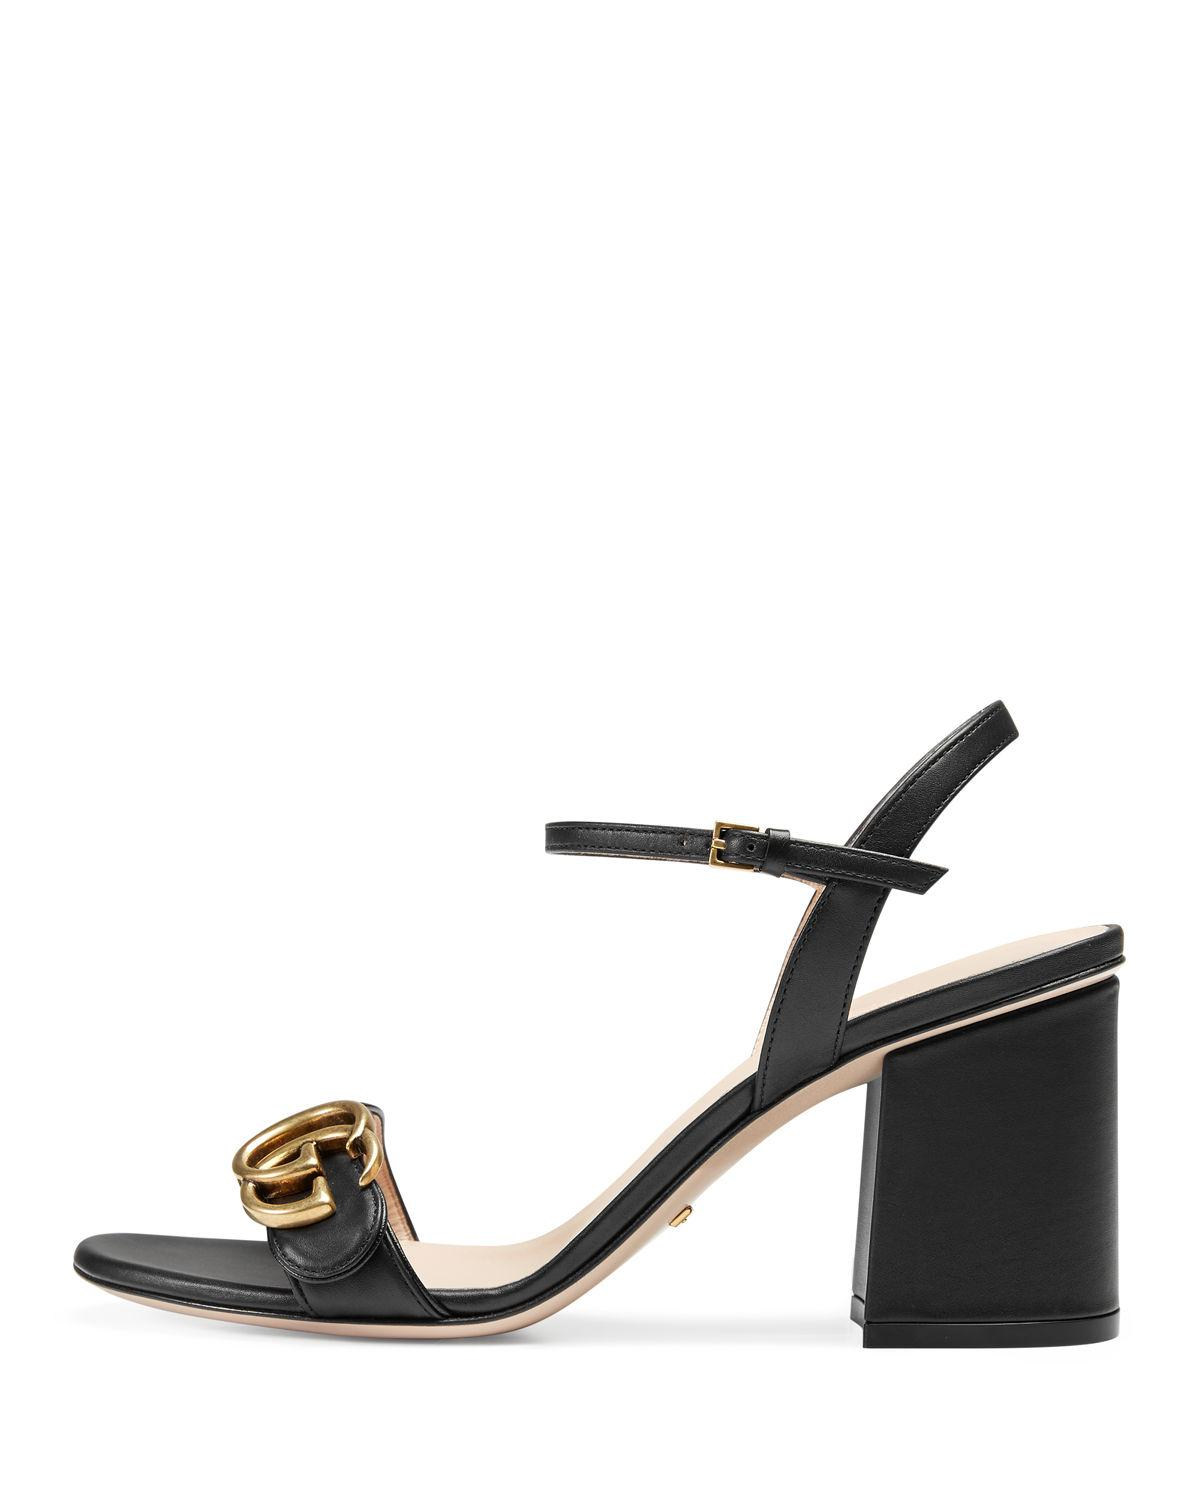 0c0cb7527ba Lyst - Gucci Marmont Leather GG Block-heel Sandals in Black